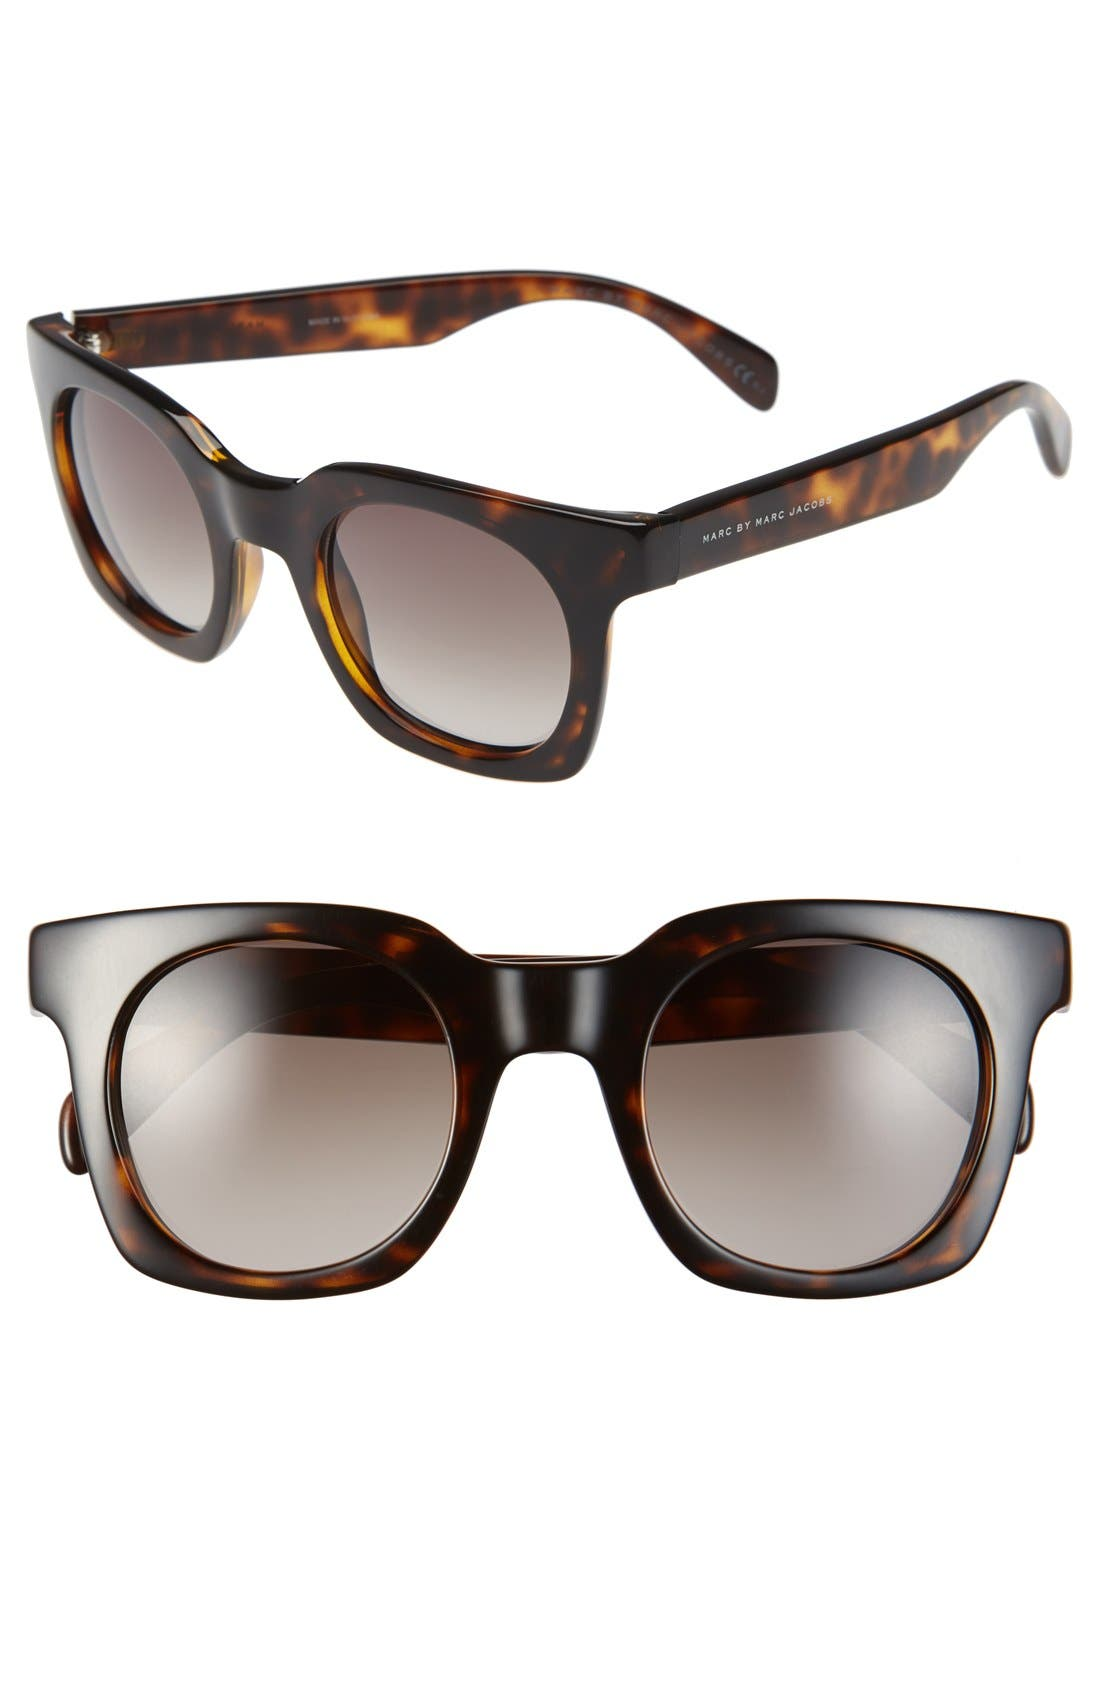 Main Image - MARC BY MARC JACOBS 47mm Retro Sunglasses